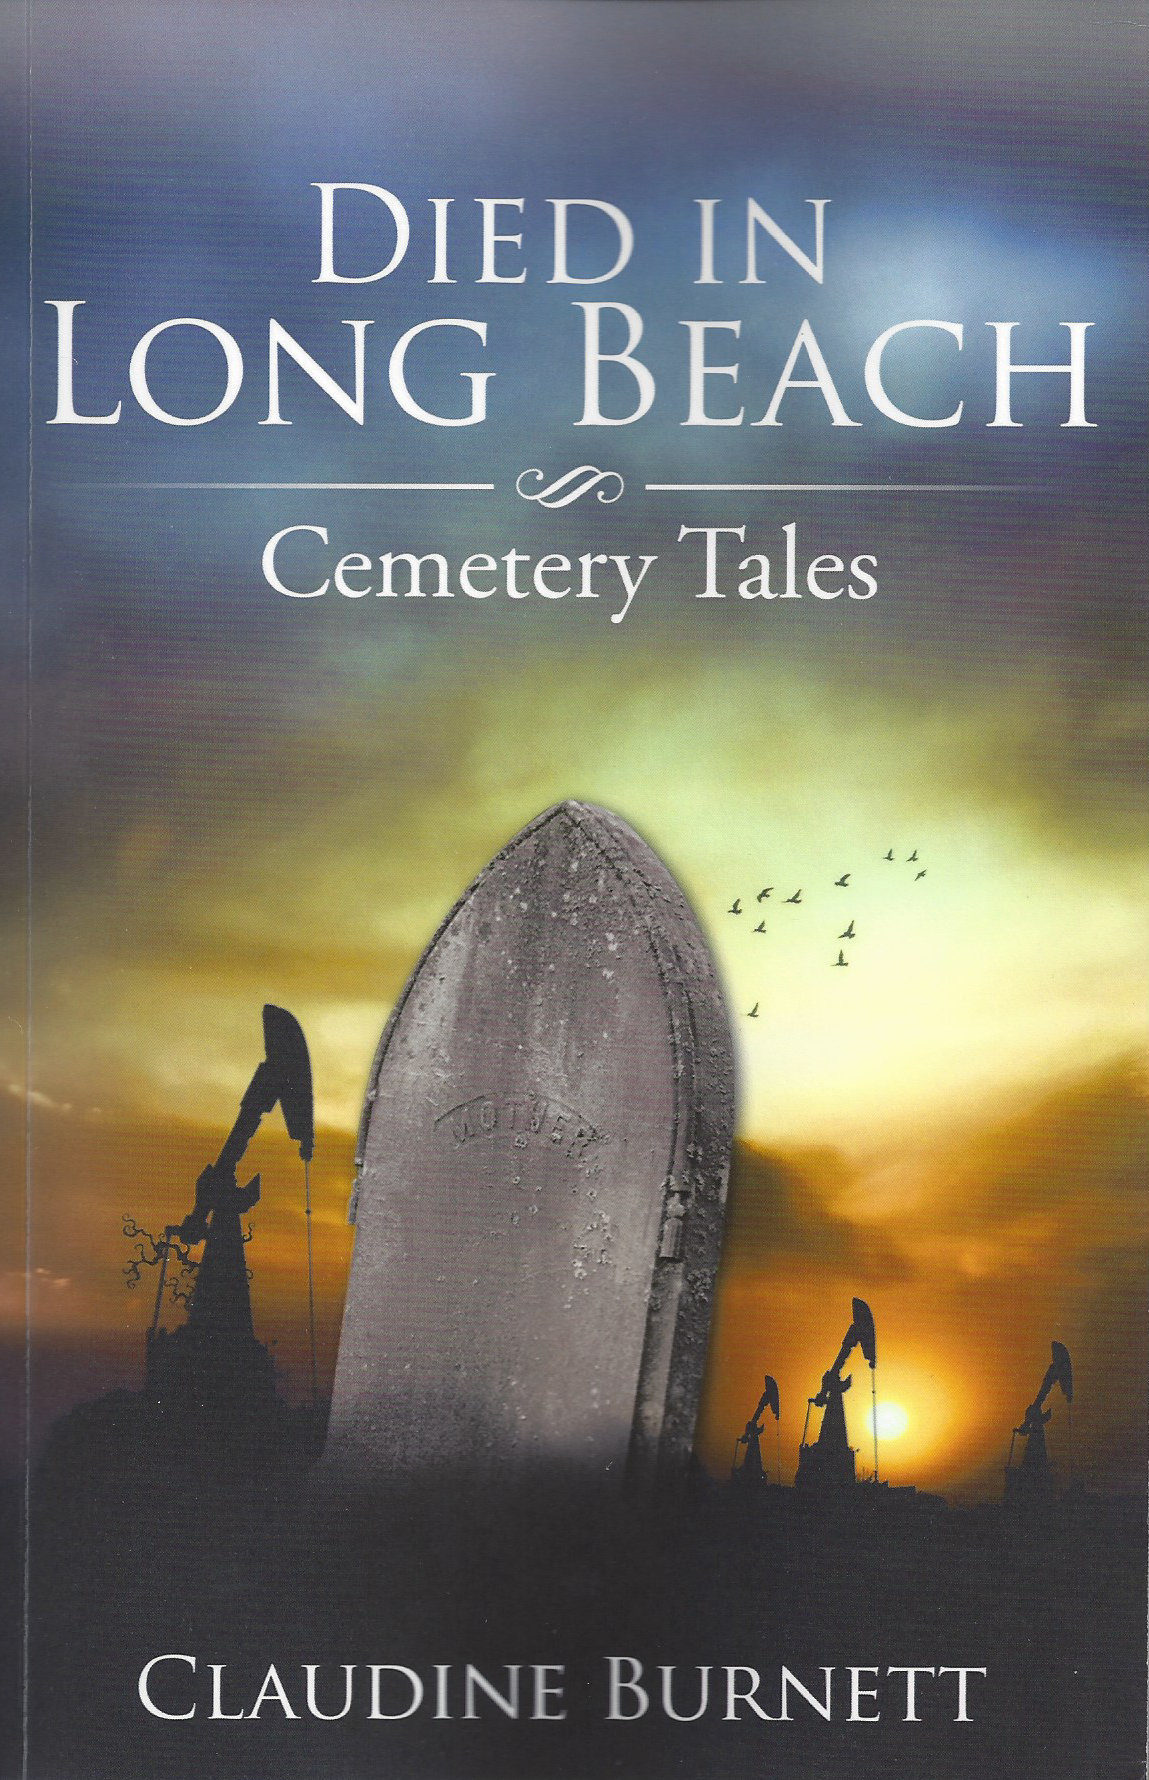 Died in Long Beach – Cemetery Tales